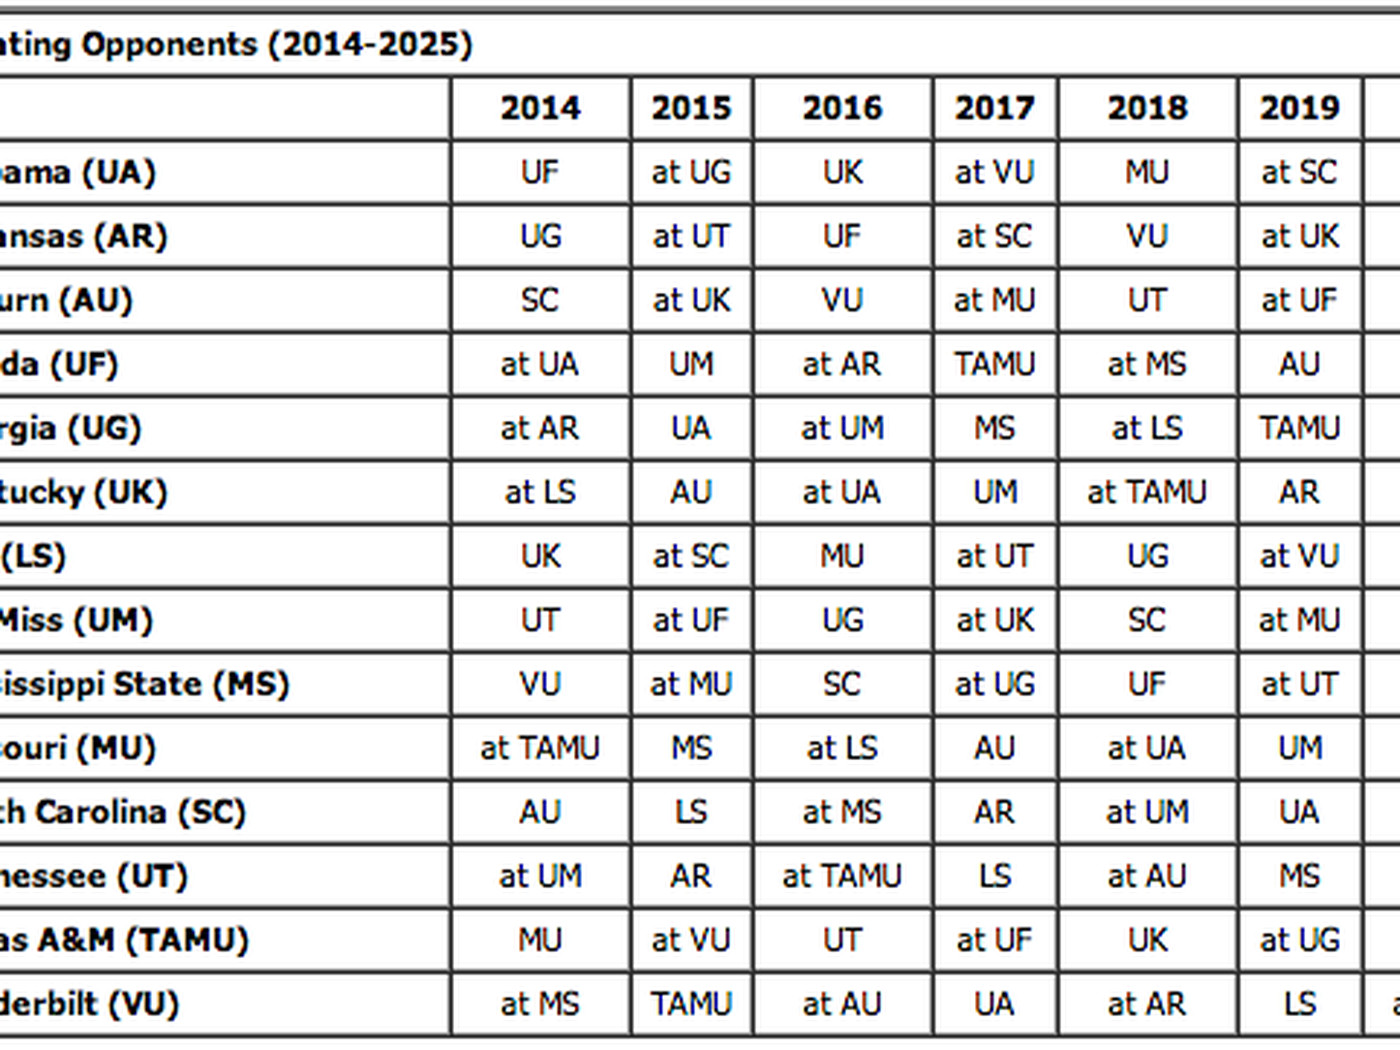 here are each sec team's scheduled conference opponents through 2025